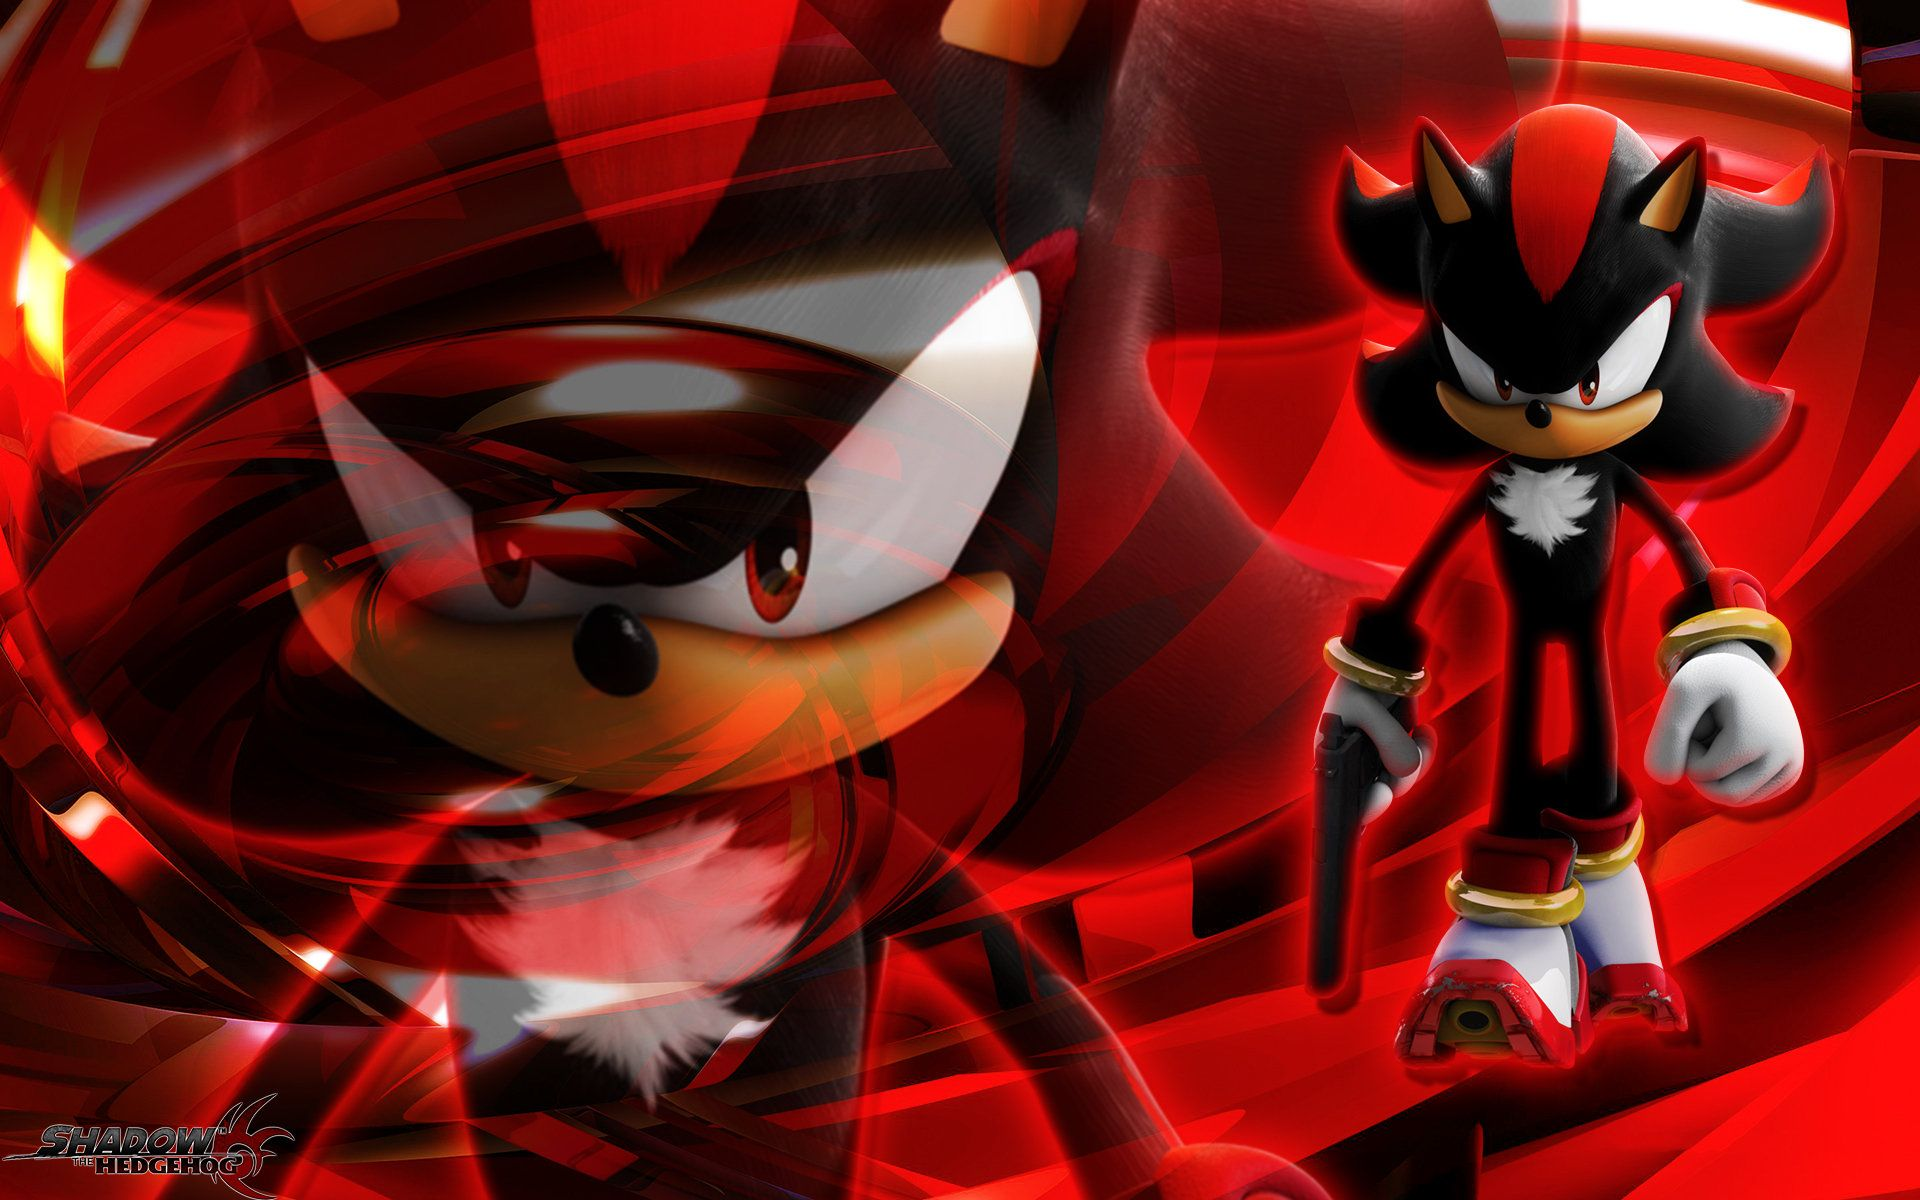 Shadow The Hedgehog Wallpaper By Sonicthehedgehogbg On Deviantart Shadow The Hedgehog Sonic Wallpaper Backgrounds